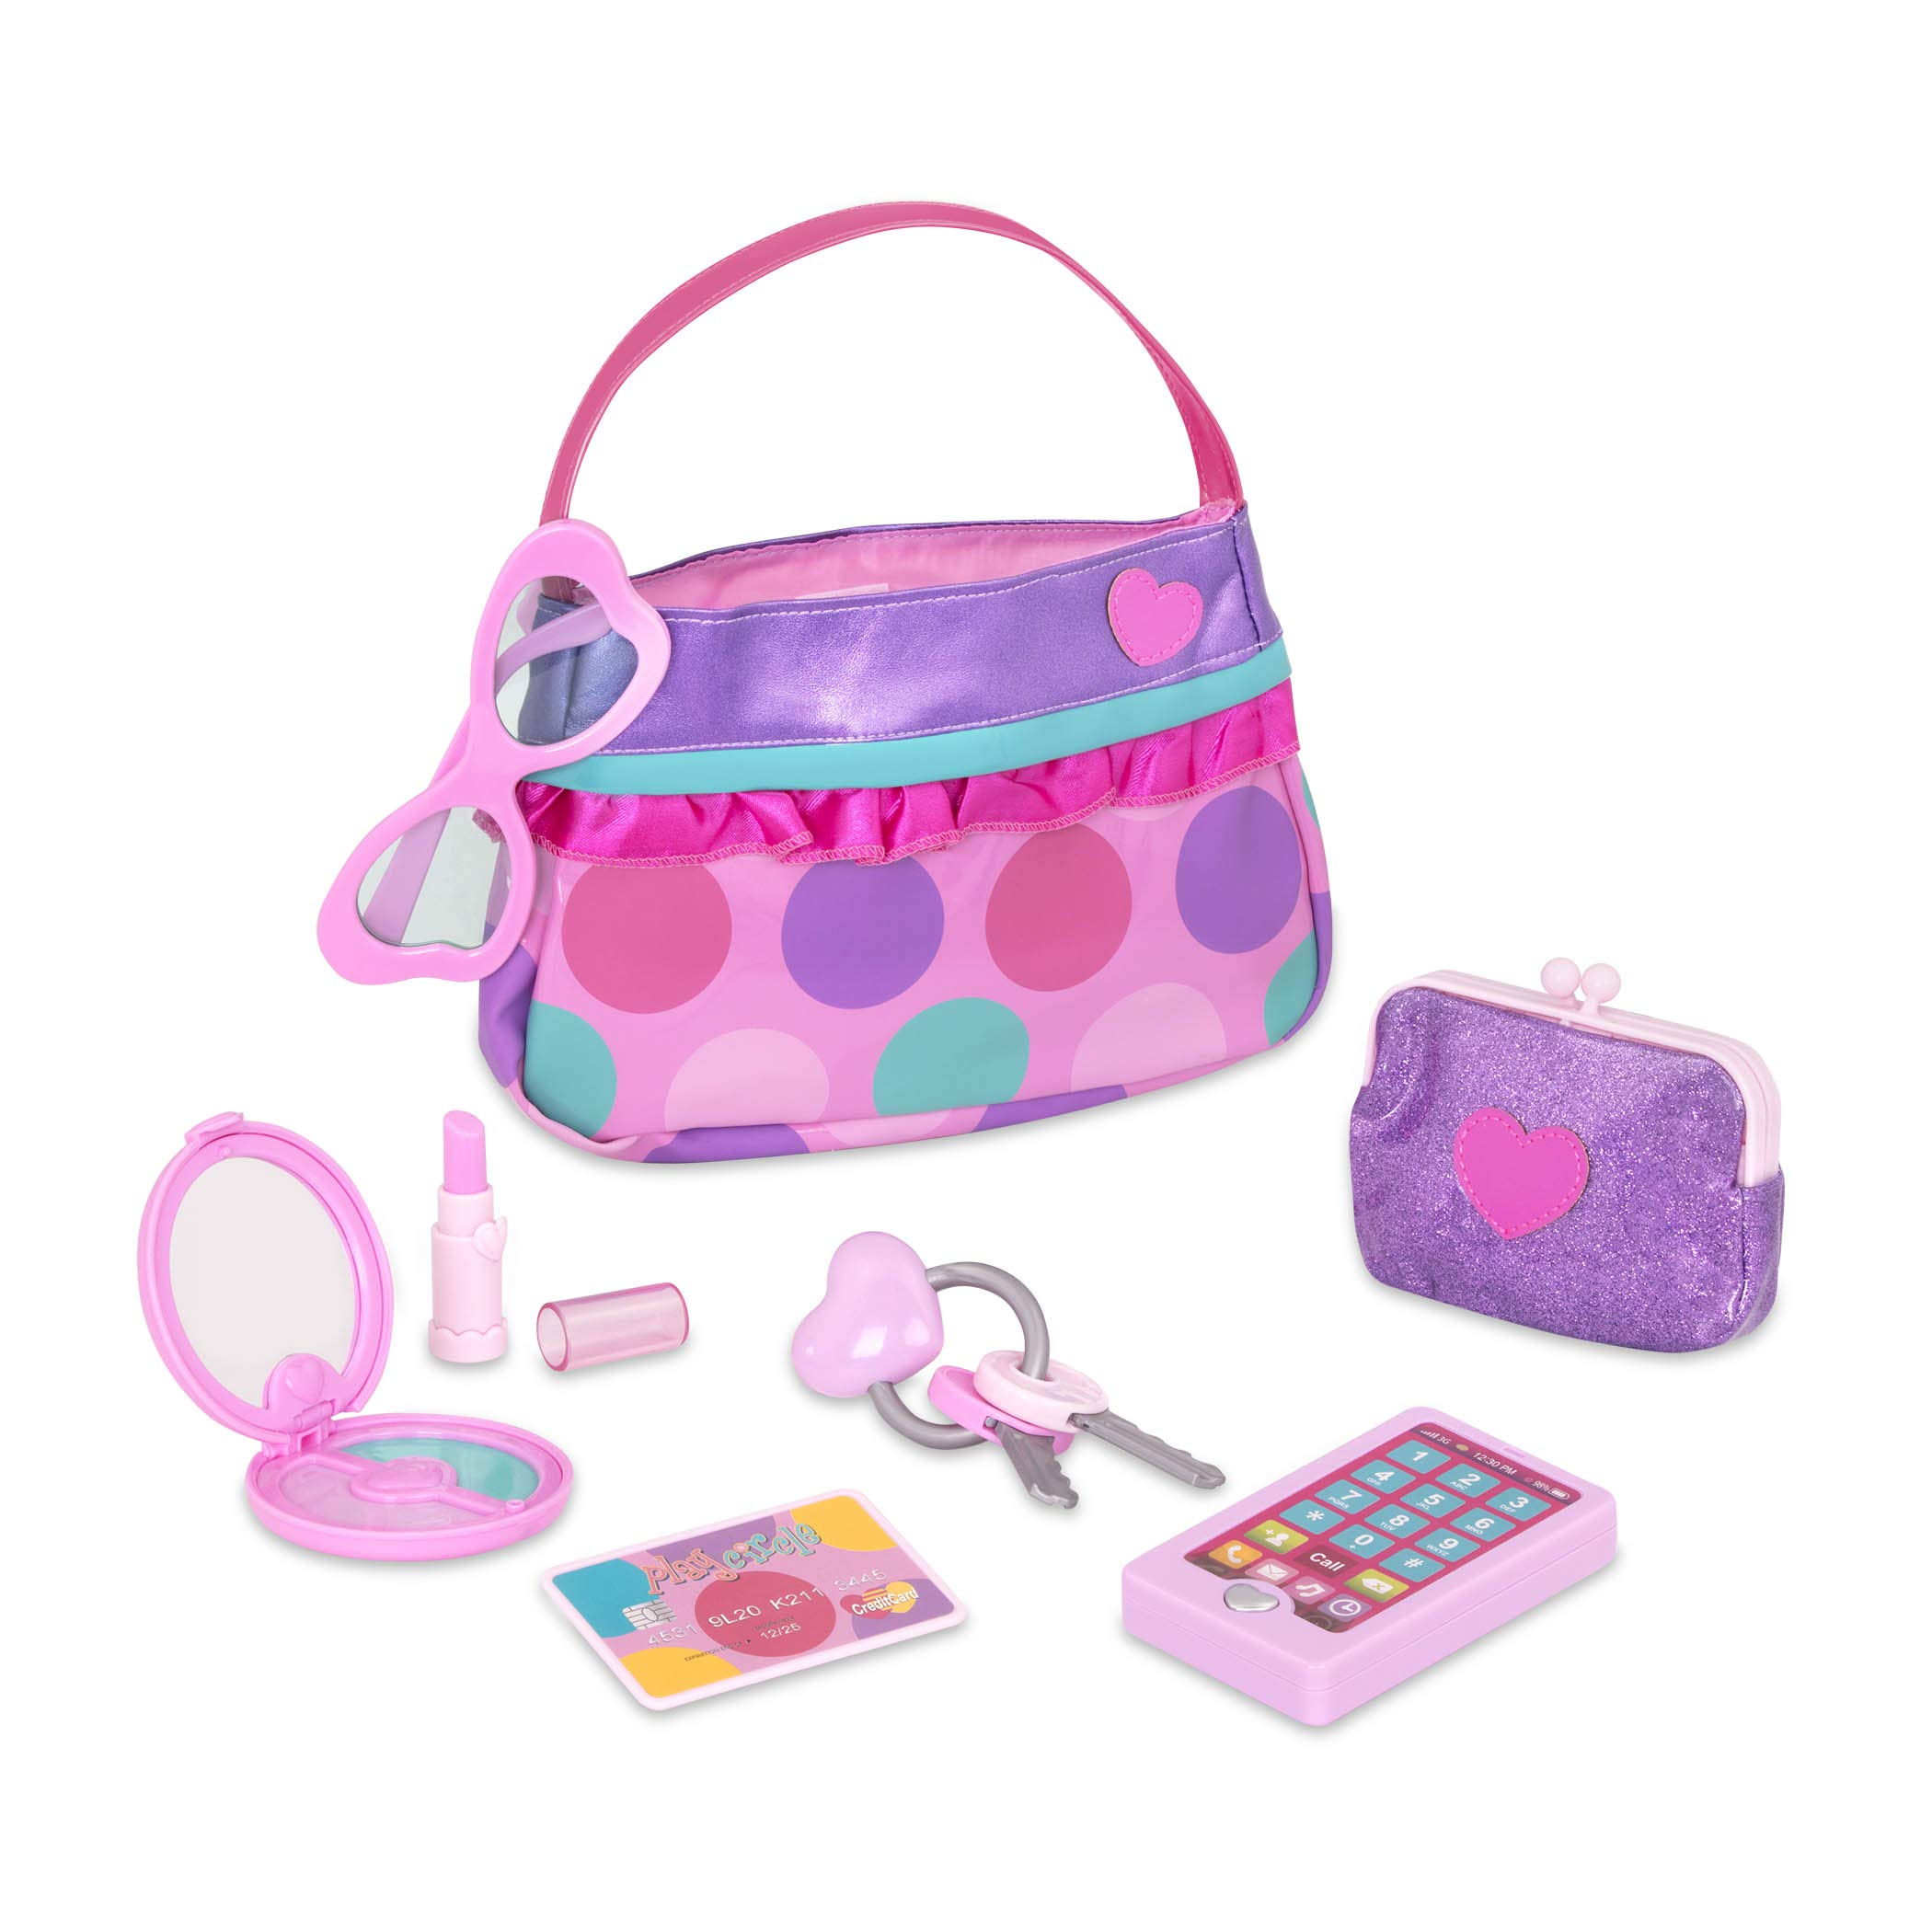 Play Circle by Battat - Princess Purse Set - 8-piece Kids Play Purse and Accessories - Pretend Play Purse Set Toy with Pretend Makeup For Kids Age 3 Years and Up by Play Circle by Battat